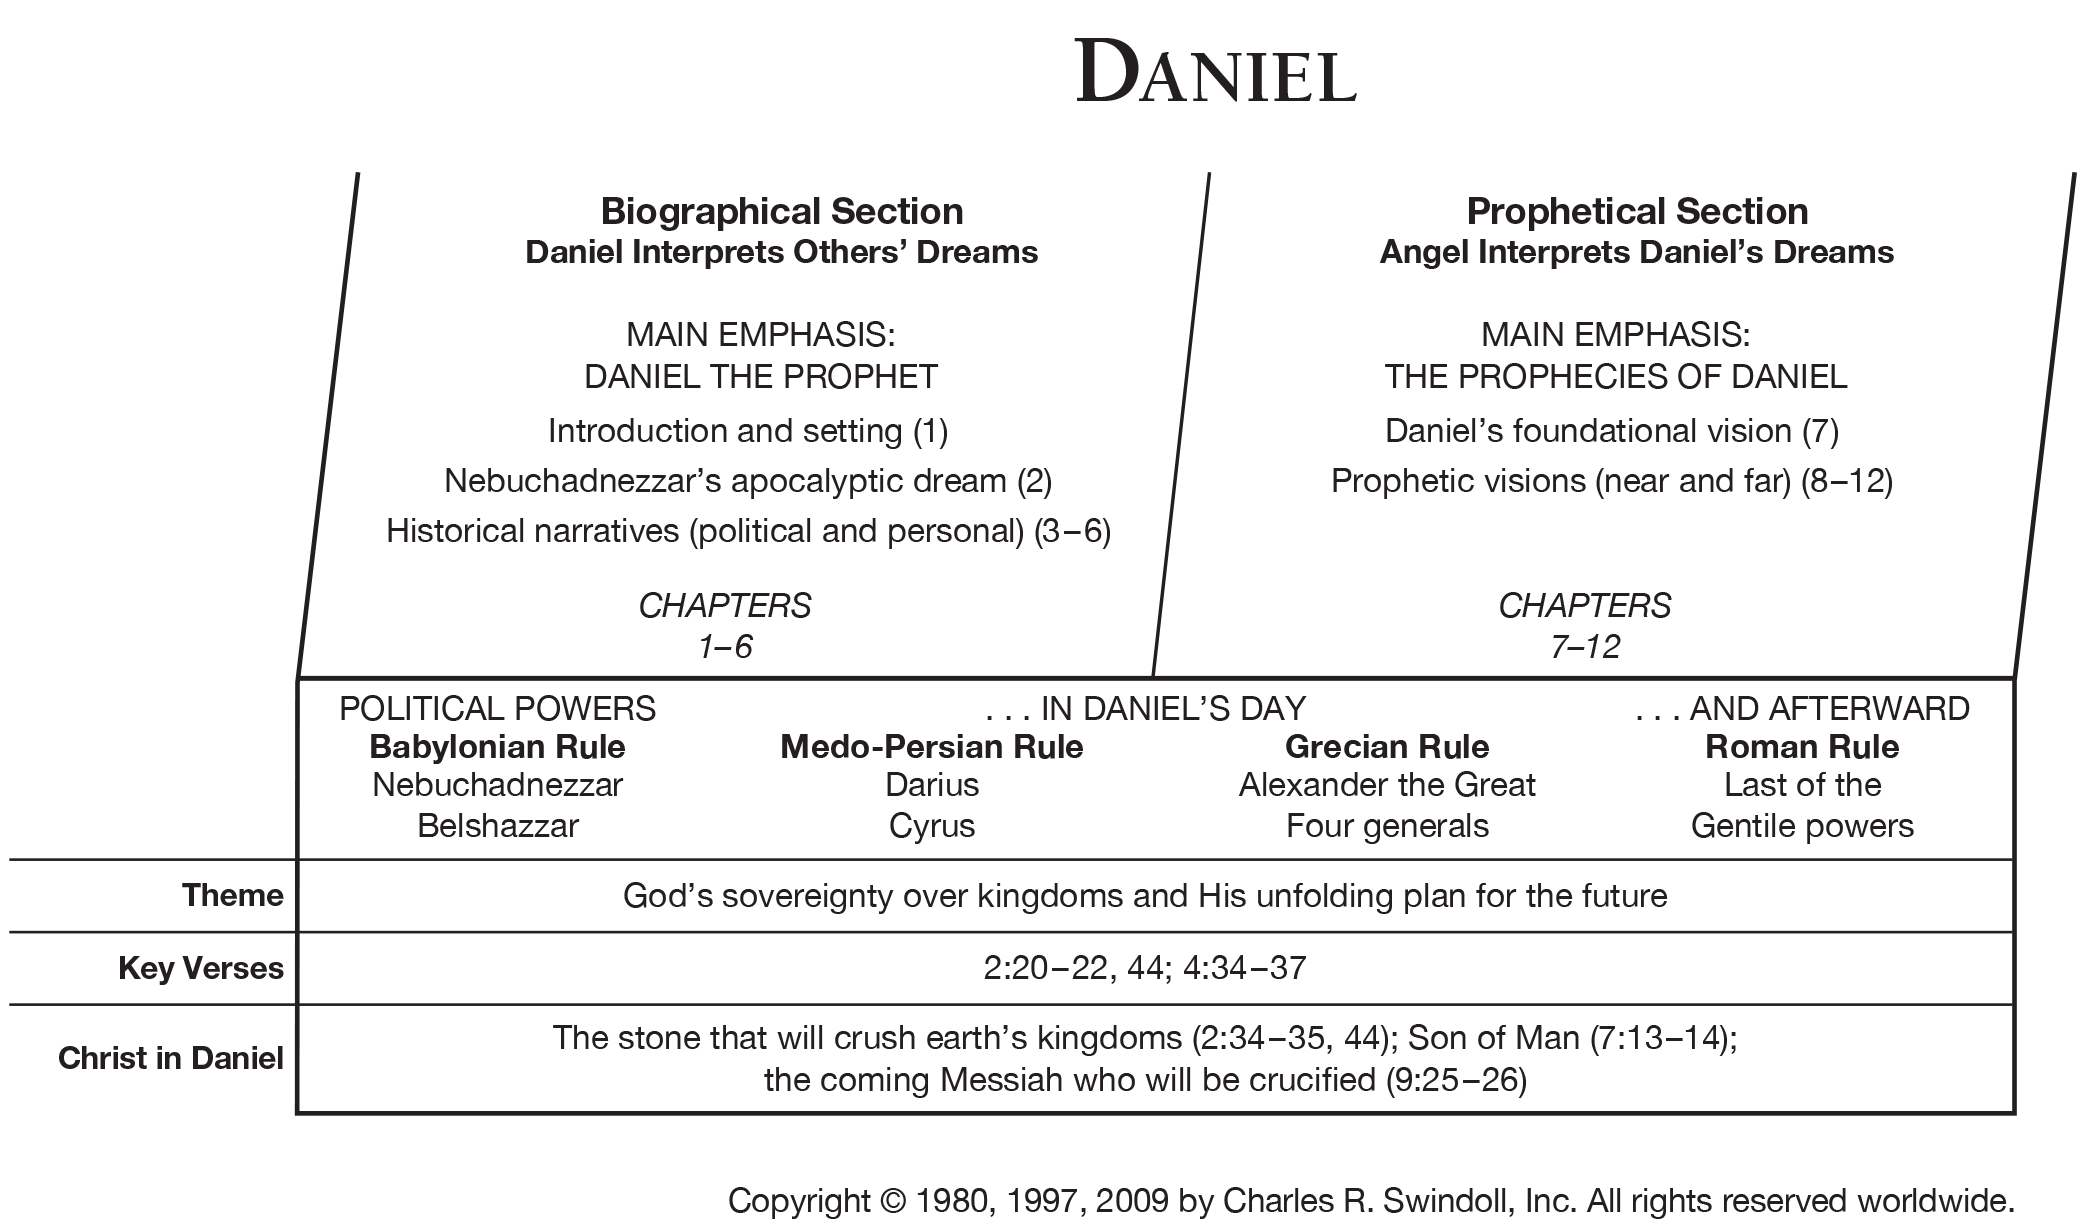 View Chuck Swindoll's chart of Daniel, which divides the ...